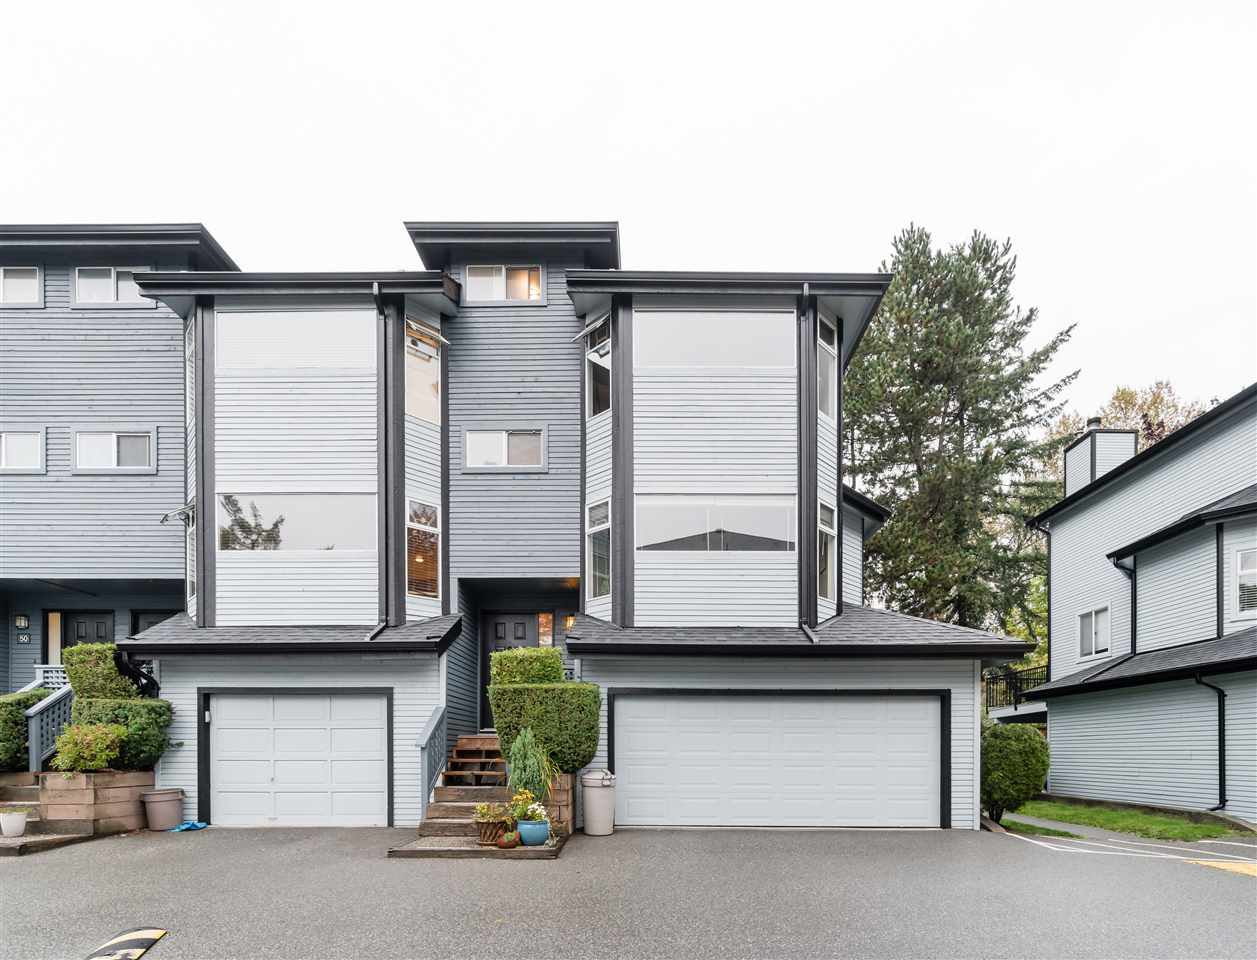 Main Photo: 52 1195 FALCON DRIVE in Coquitlam: Eagle Ridge CQ Townhouse for sale : MLS®# R2411804